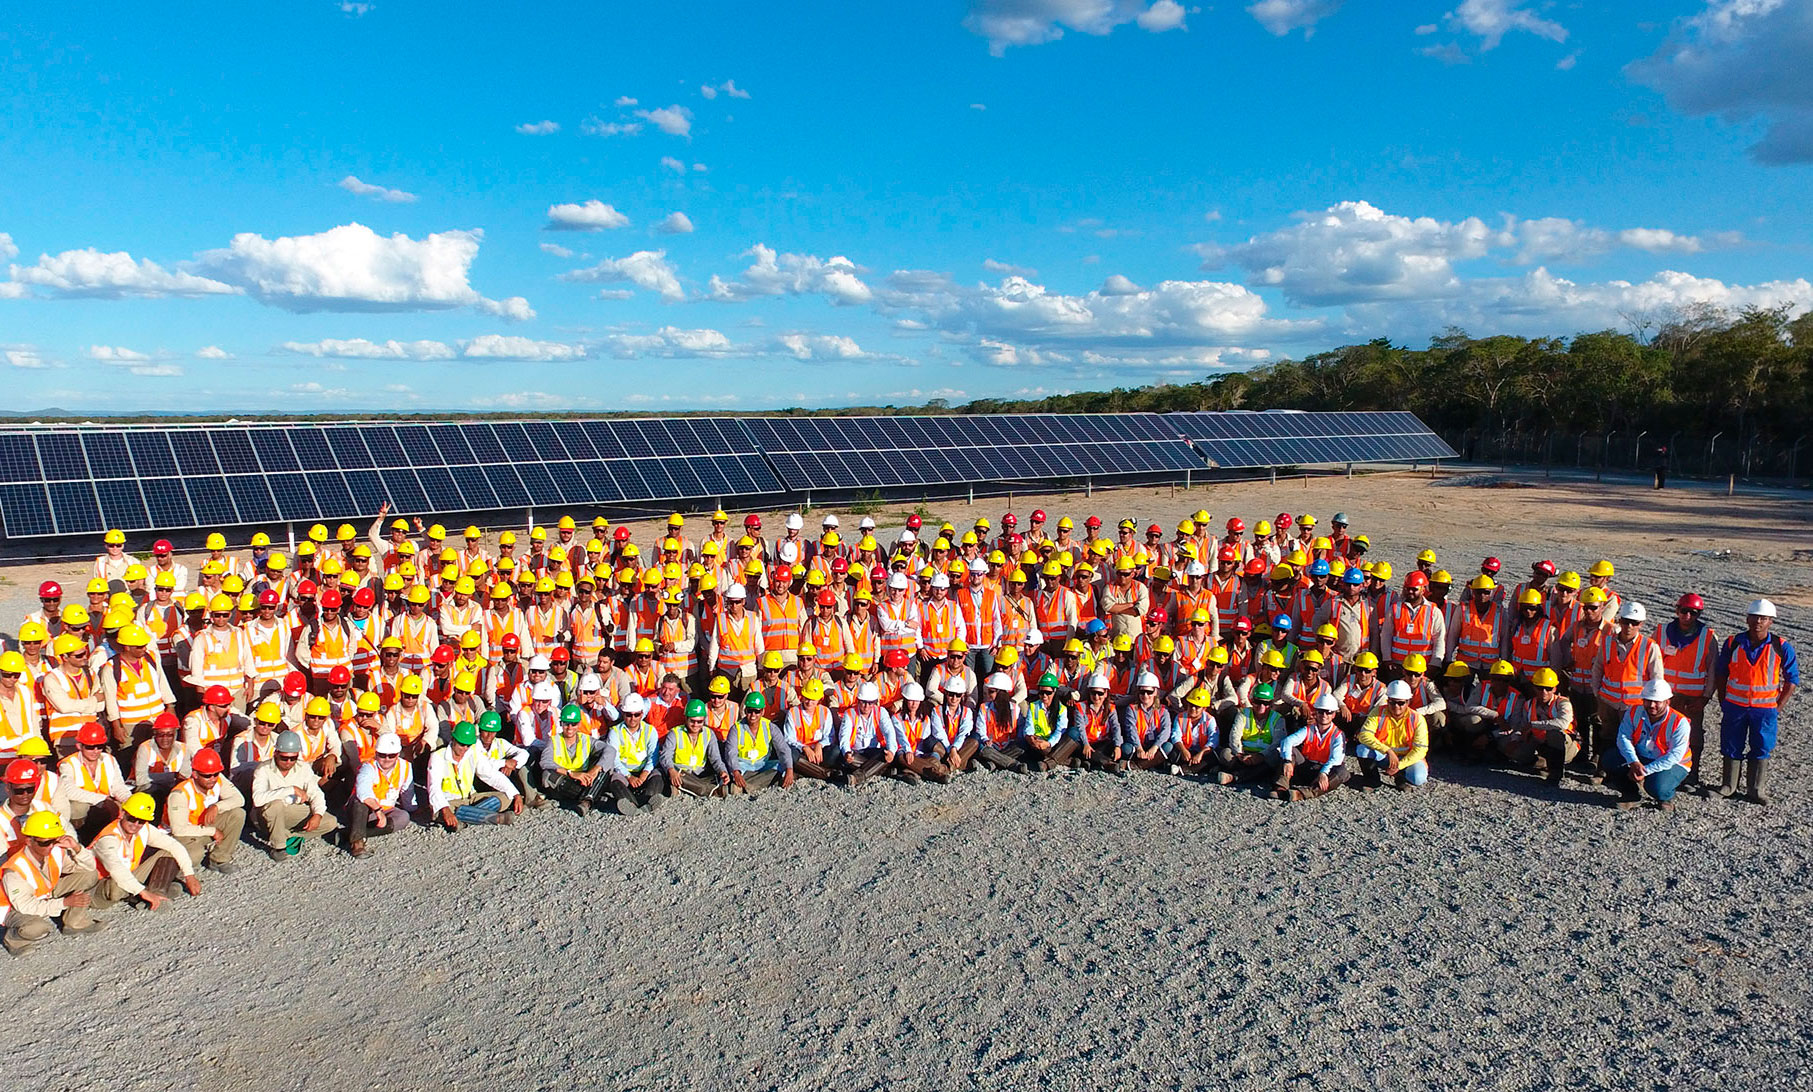 Join Soltec Team Brazil PV solar tracker